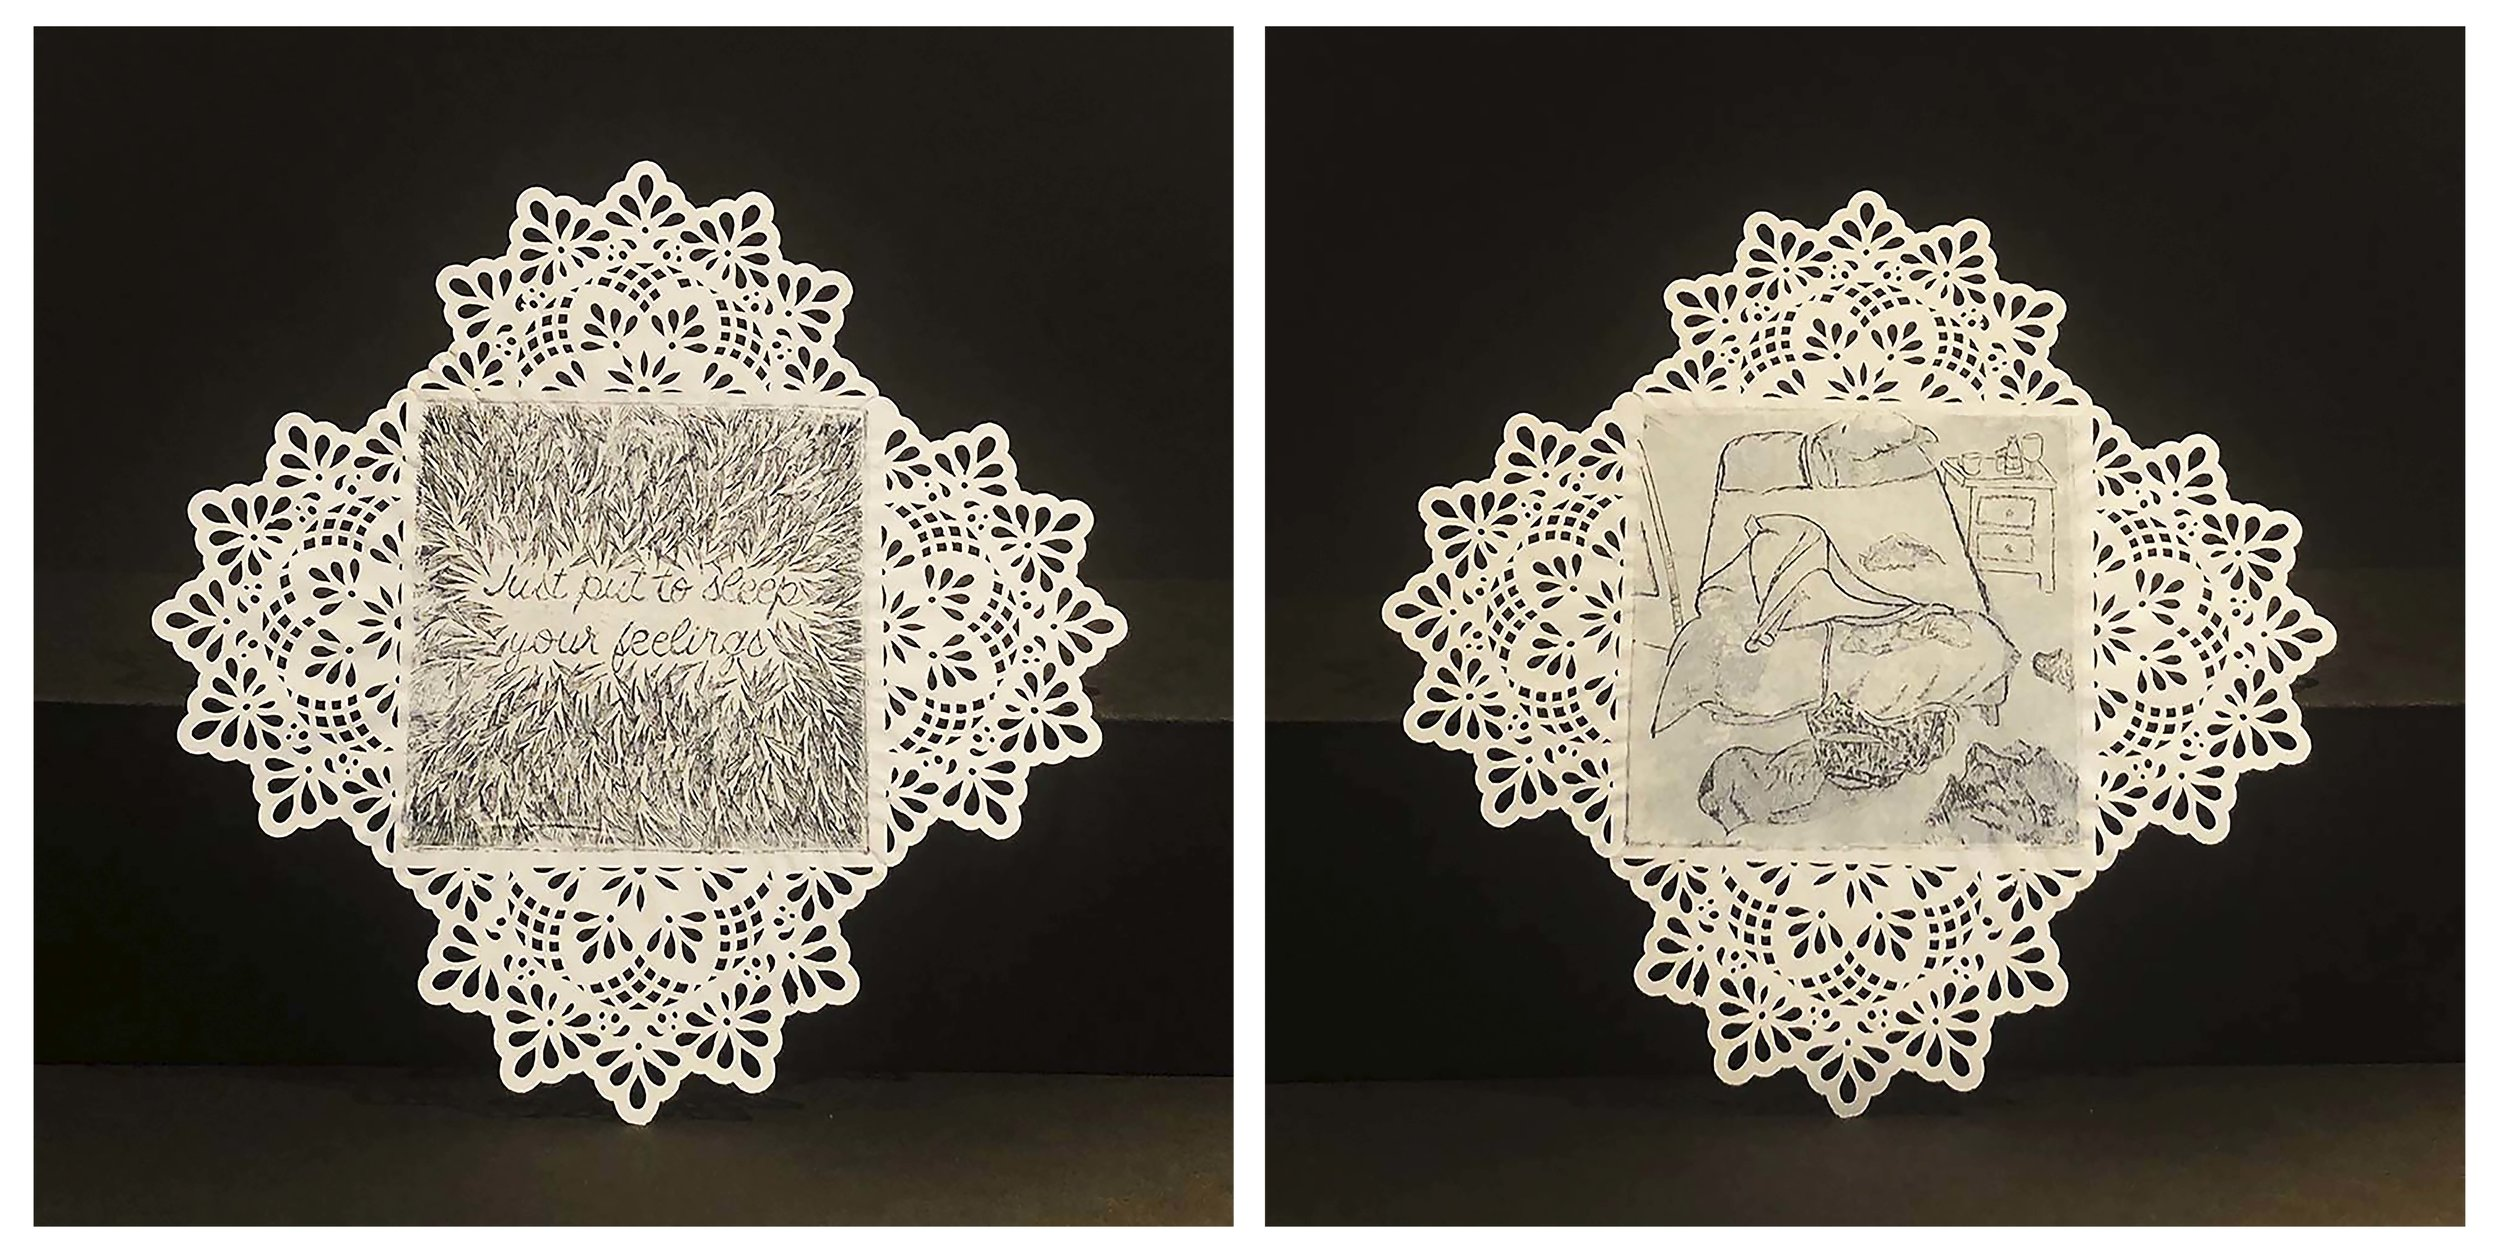 Camila Escobar Vélez   Just Put To Sleep Your Feelings  from the series  Just One Night,  2018 Double sided aquatint, etching, and chine-collé on doily Sheet: 6 x 6 inches Printed and published by the artist  Edition: 5 Courtesy of the artist